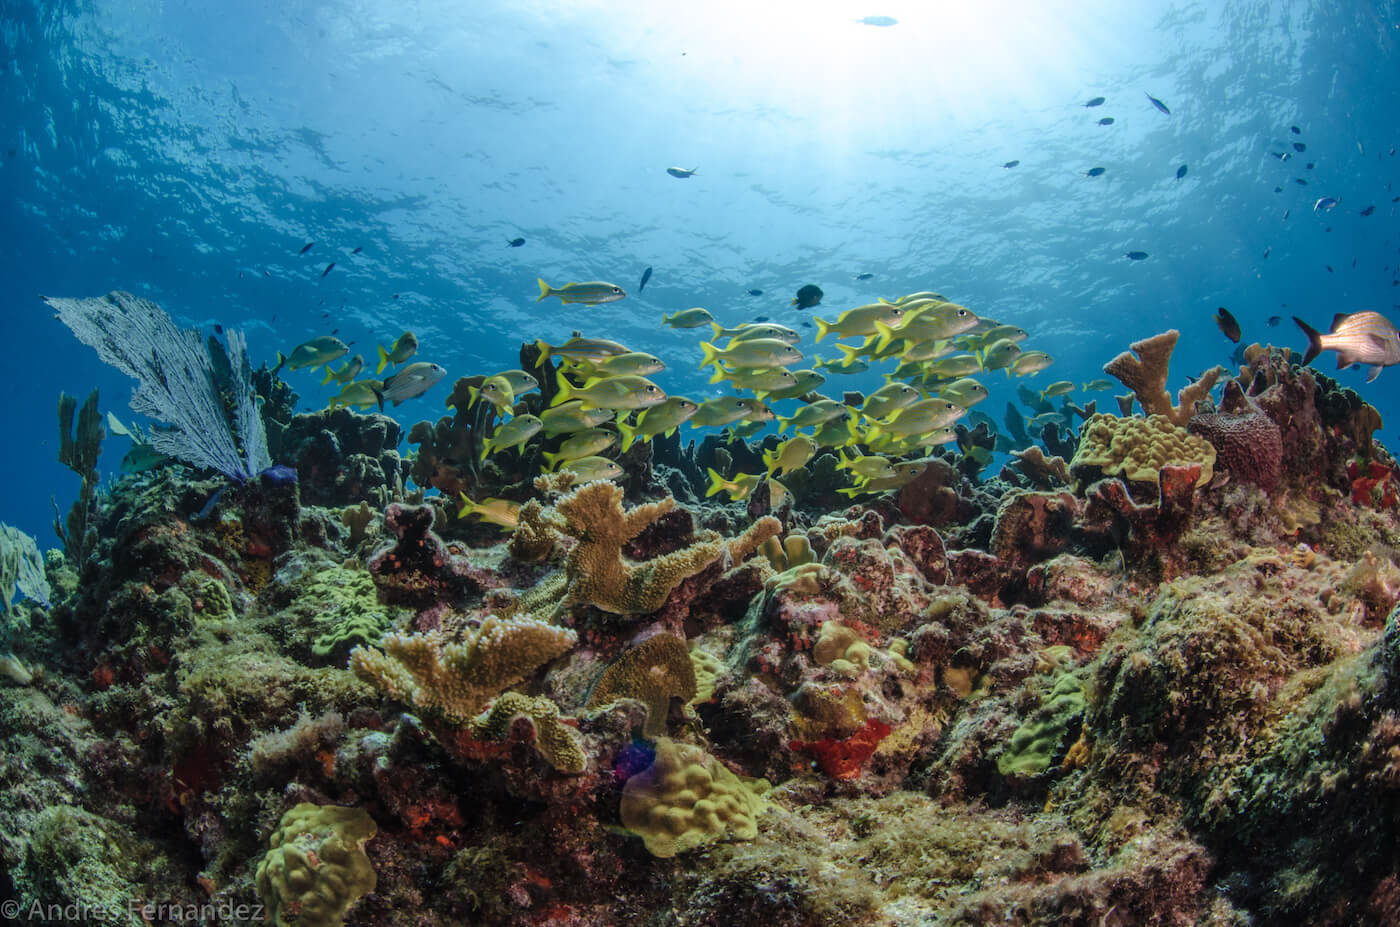 Isla Mujeres Coral Reefs Squalo Adventures Scuba Diving Snorkeling-5